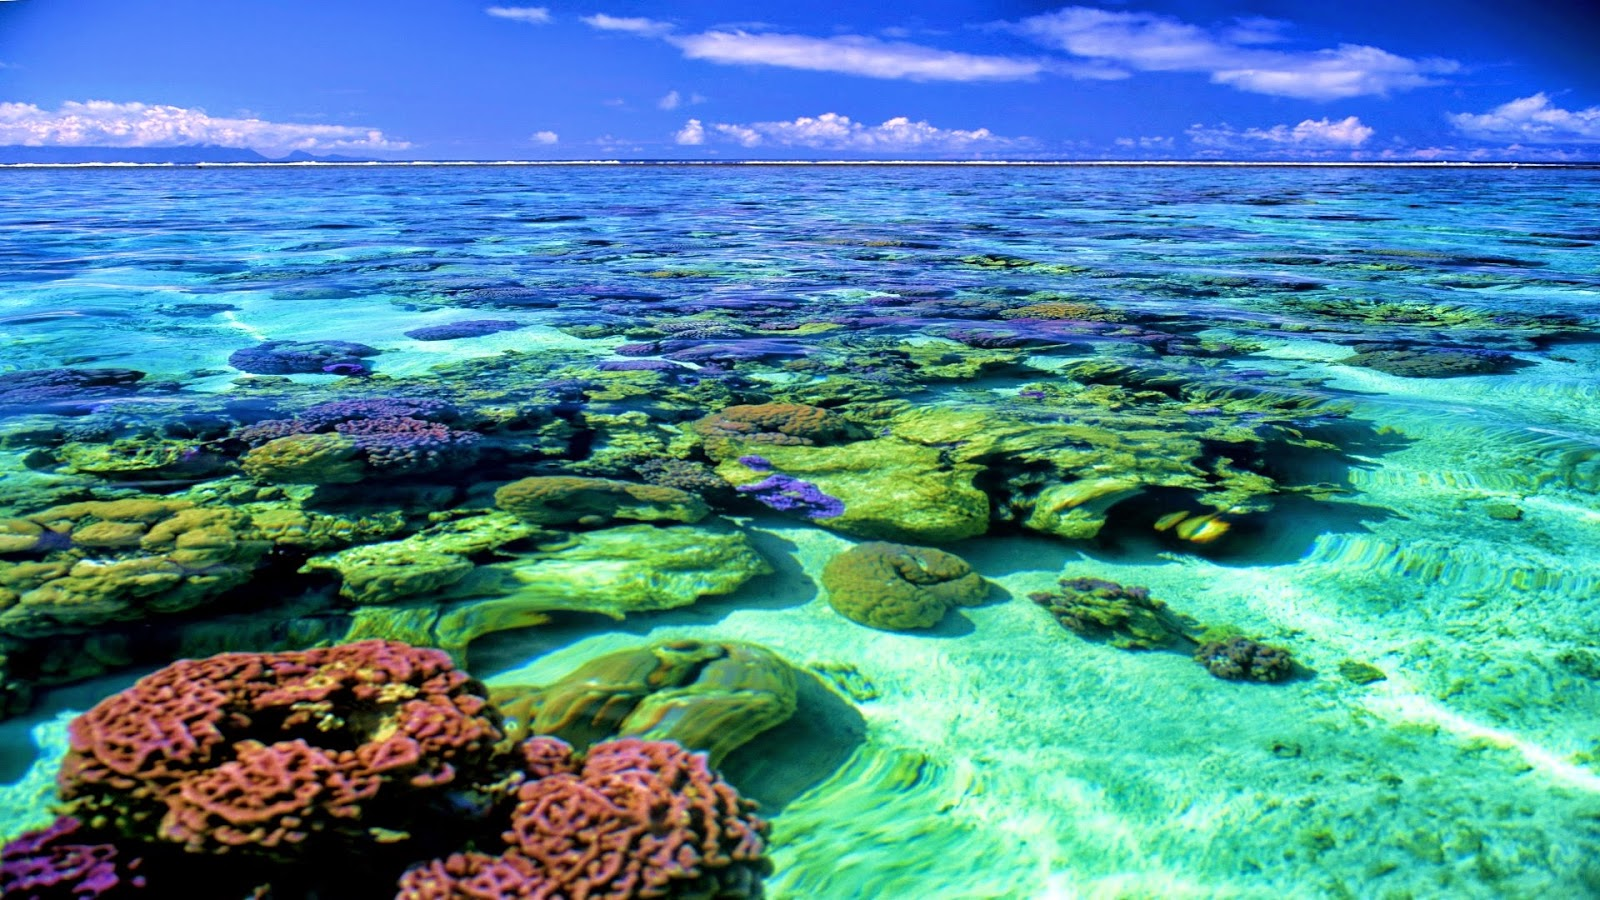 Coral Reef - HD Wallpapers | Earth Blog